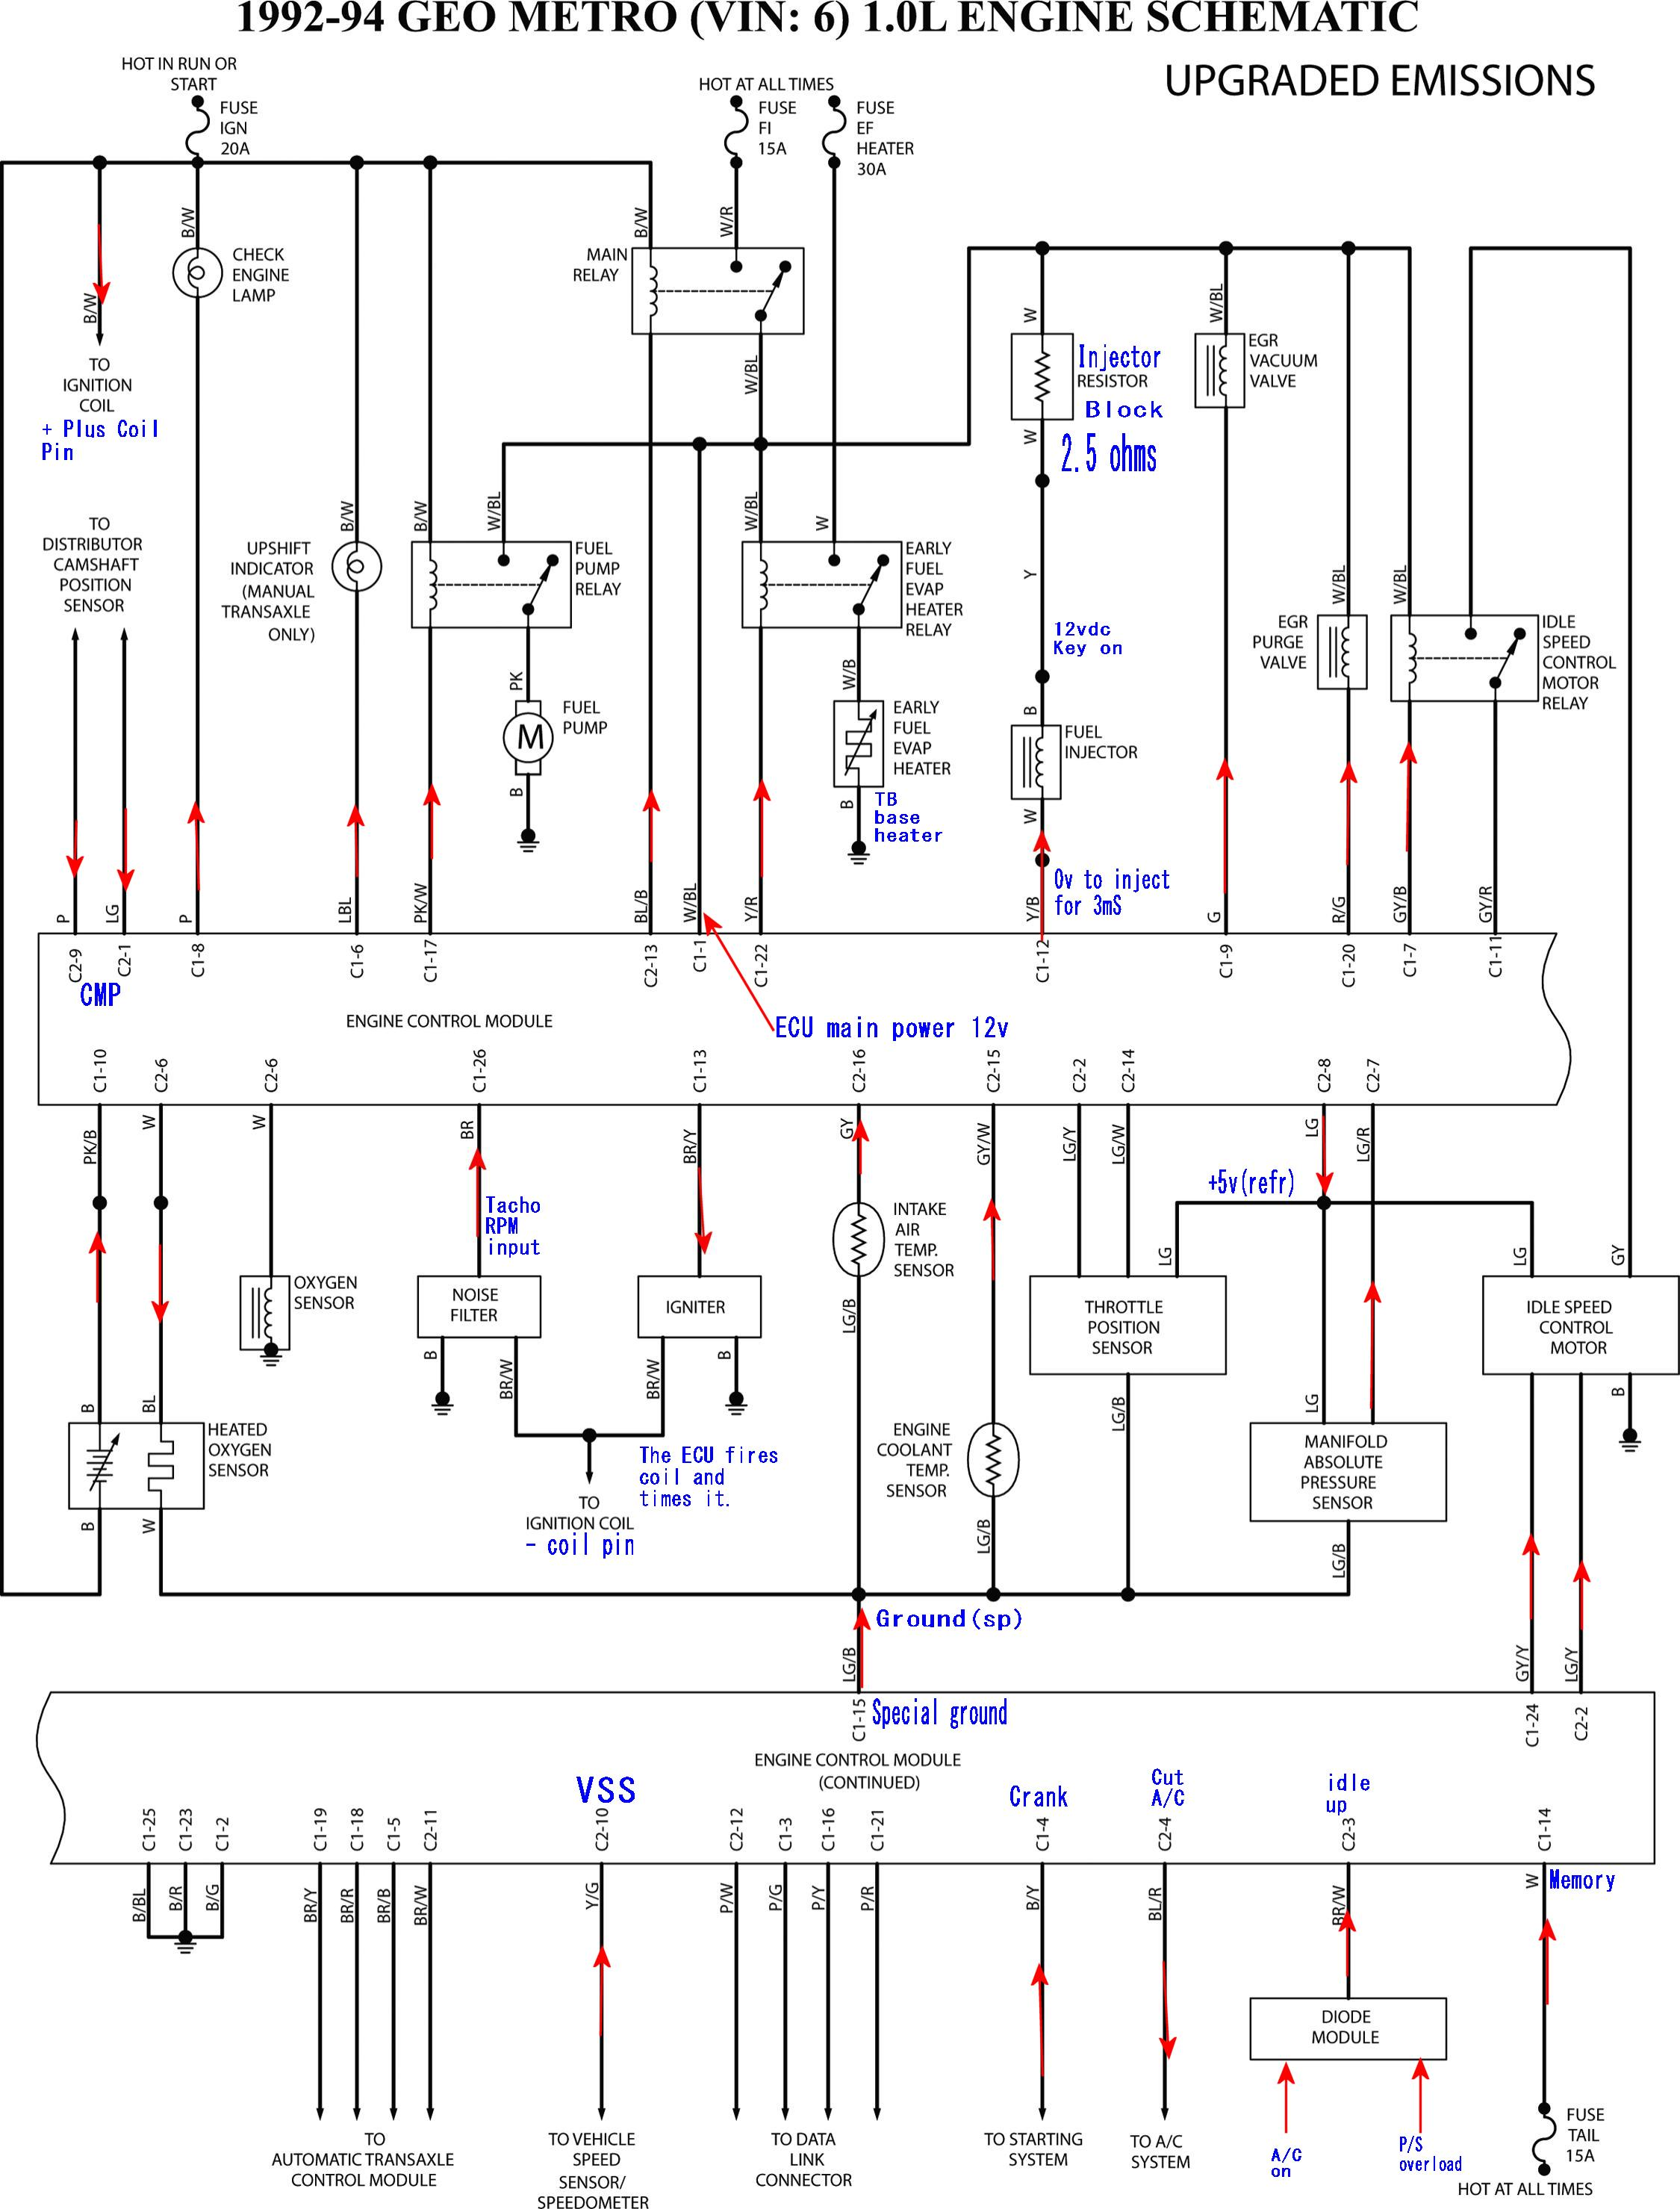 Chevy 350 Tbi Engine Diagram Get Free Image About Wiring Diagram